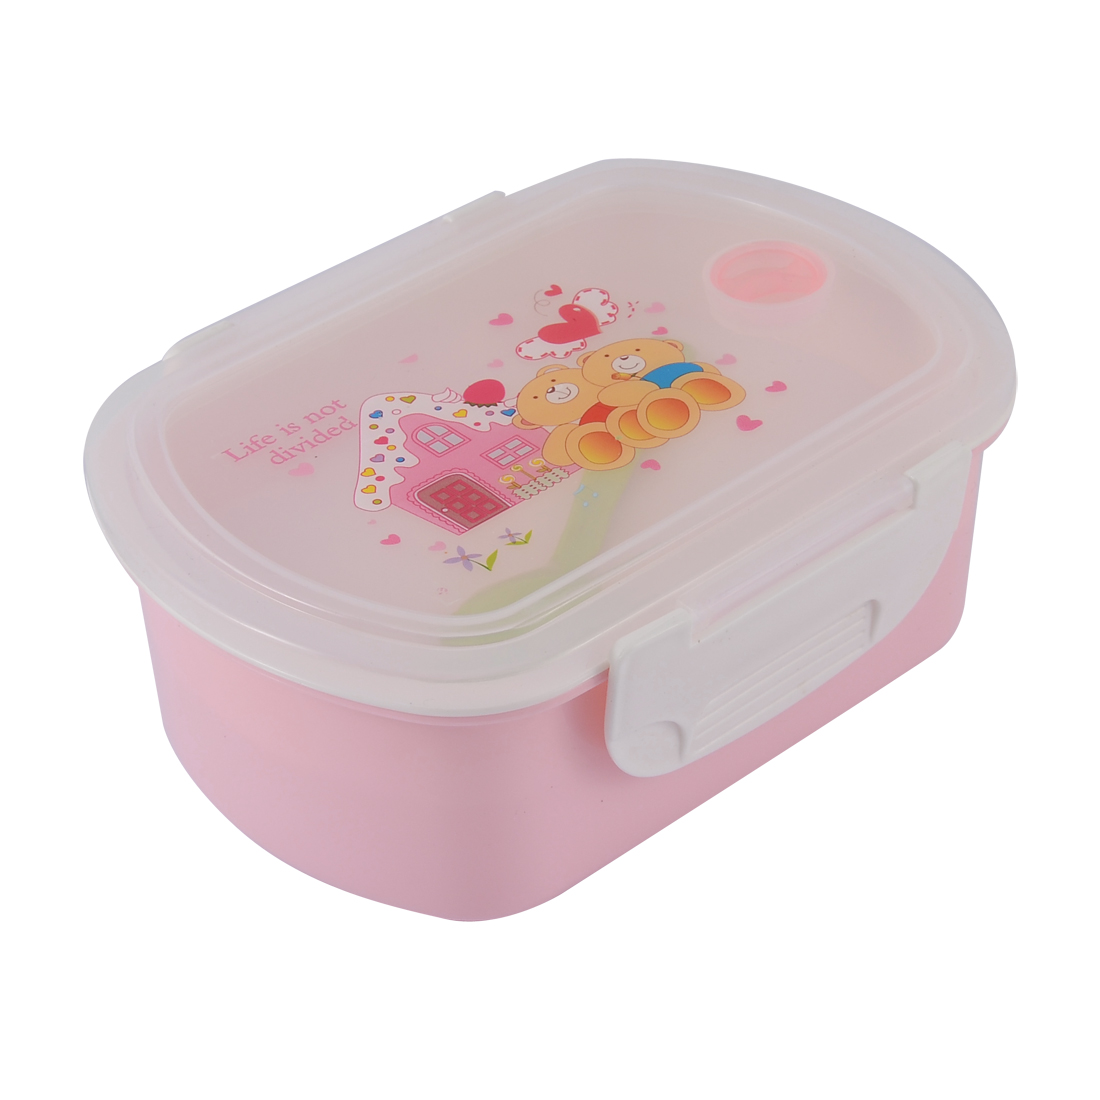 Travel Picnic Cartoon Pattern 2 Compartments Lunch Box Light Pink